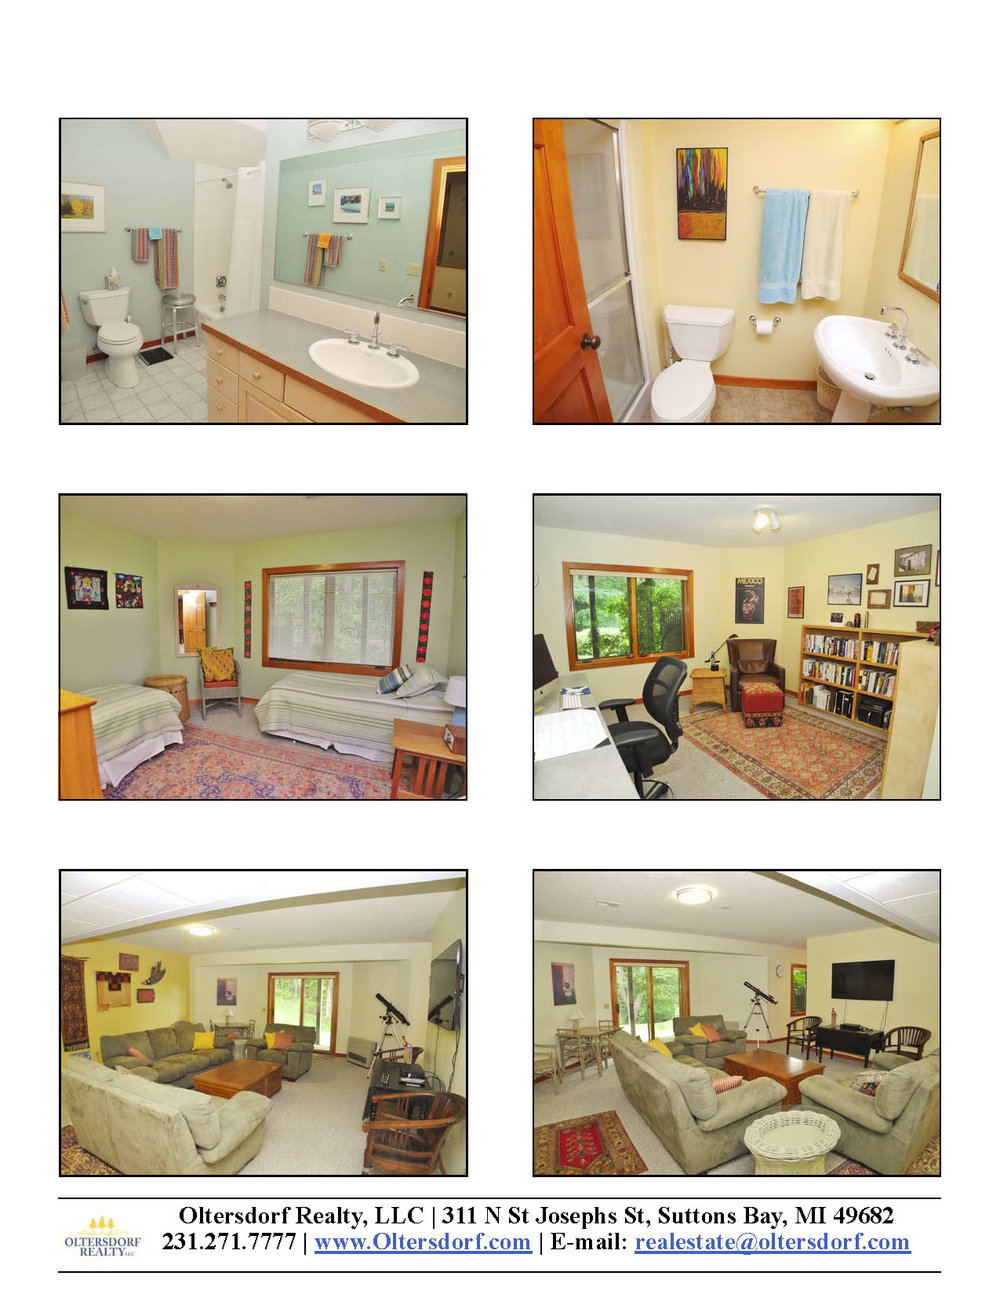 405 N Vincer Way Unit 5, Northport – FOR SALE by Oltersdorf Realty LLC - Marketing Packet (6).jpg